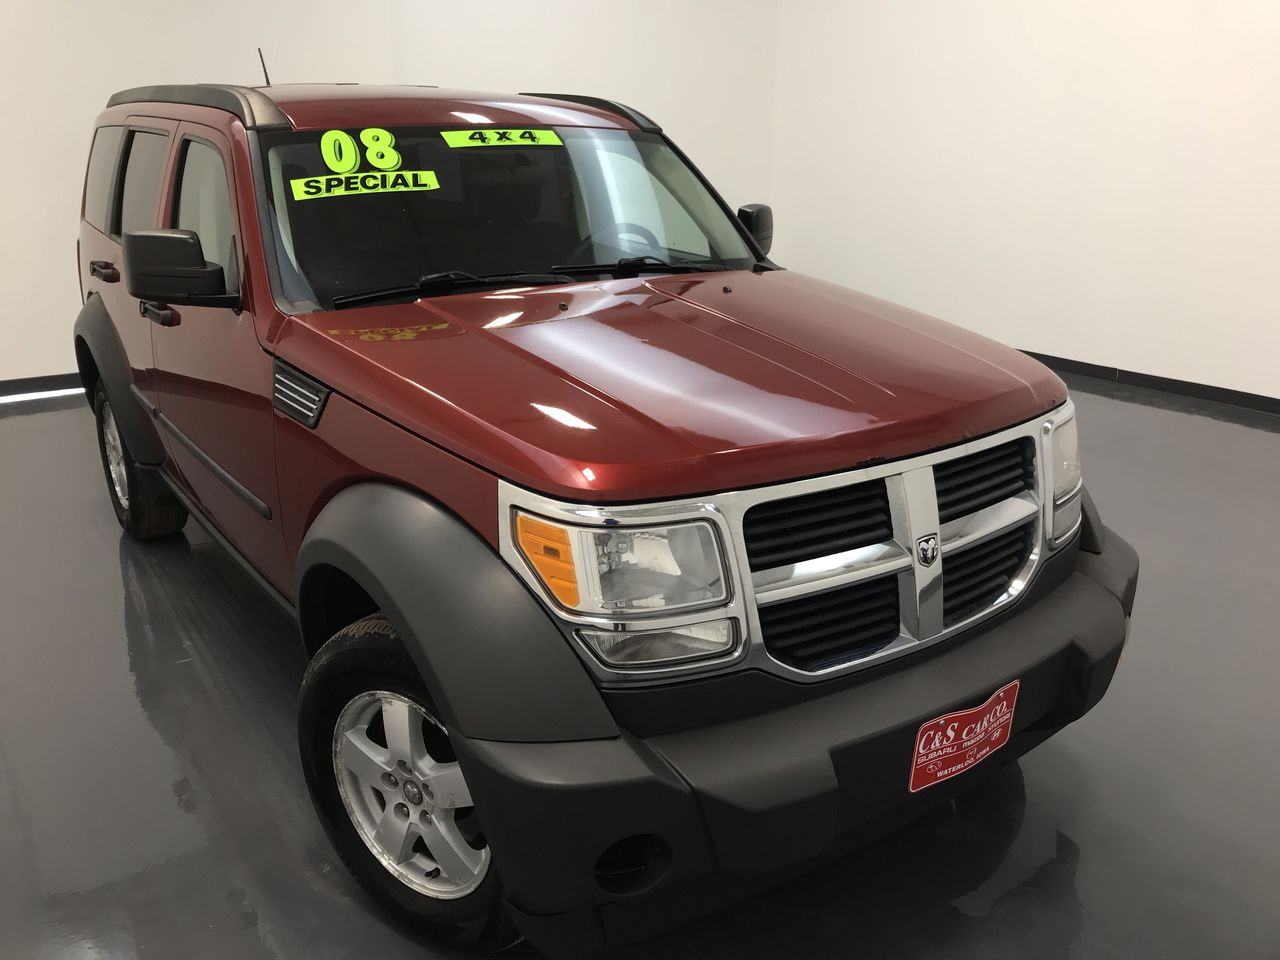 2008 Dodge Nitro  - C & S Car Company